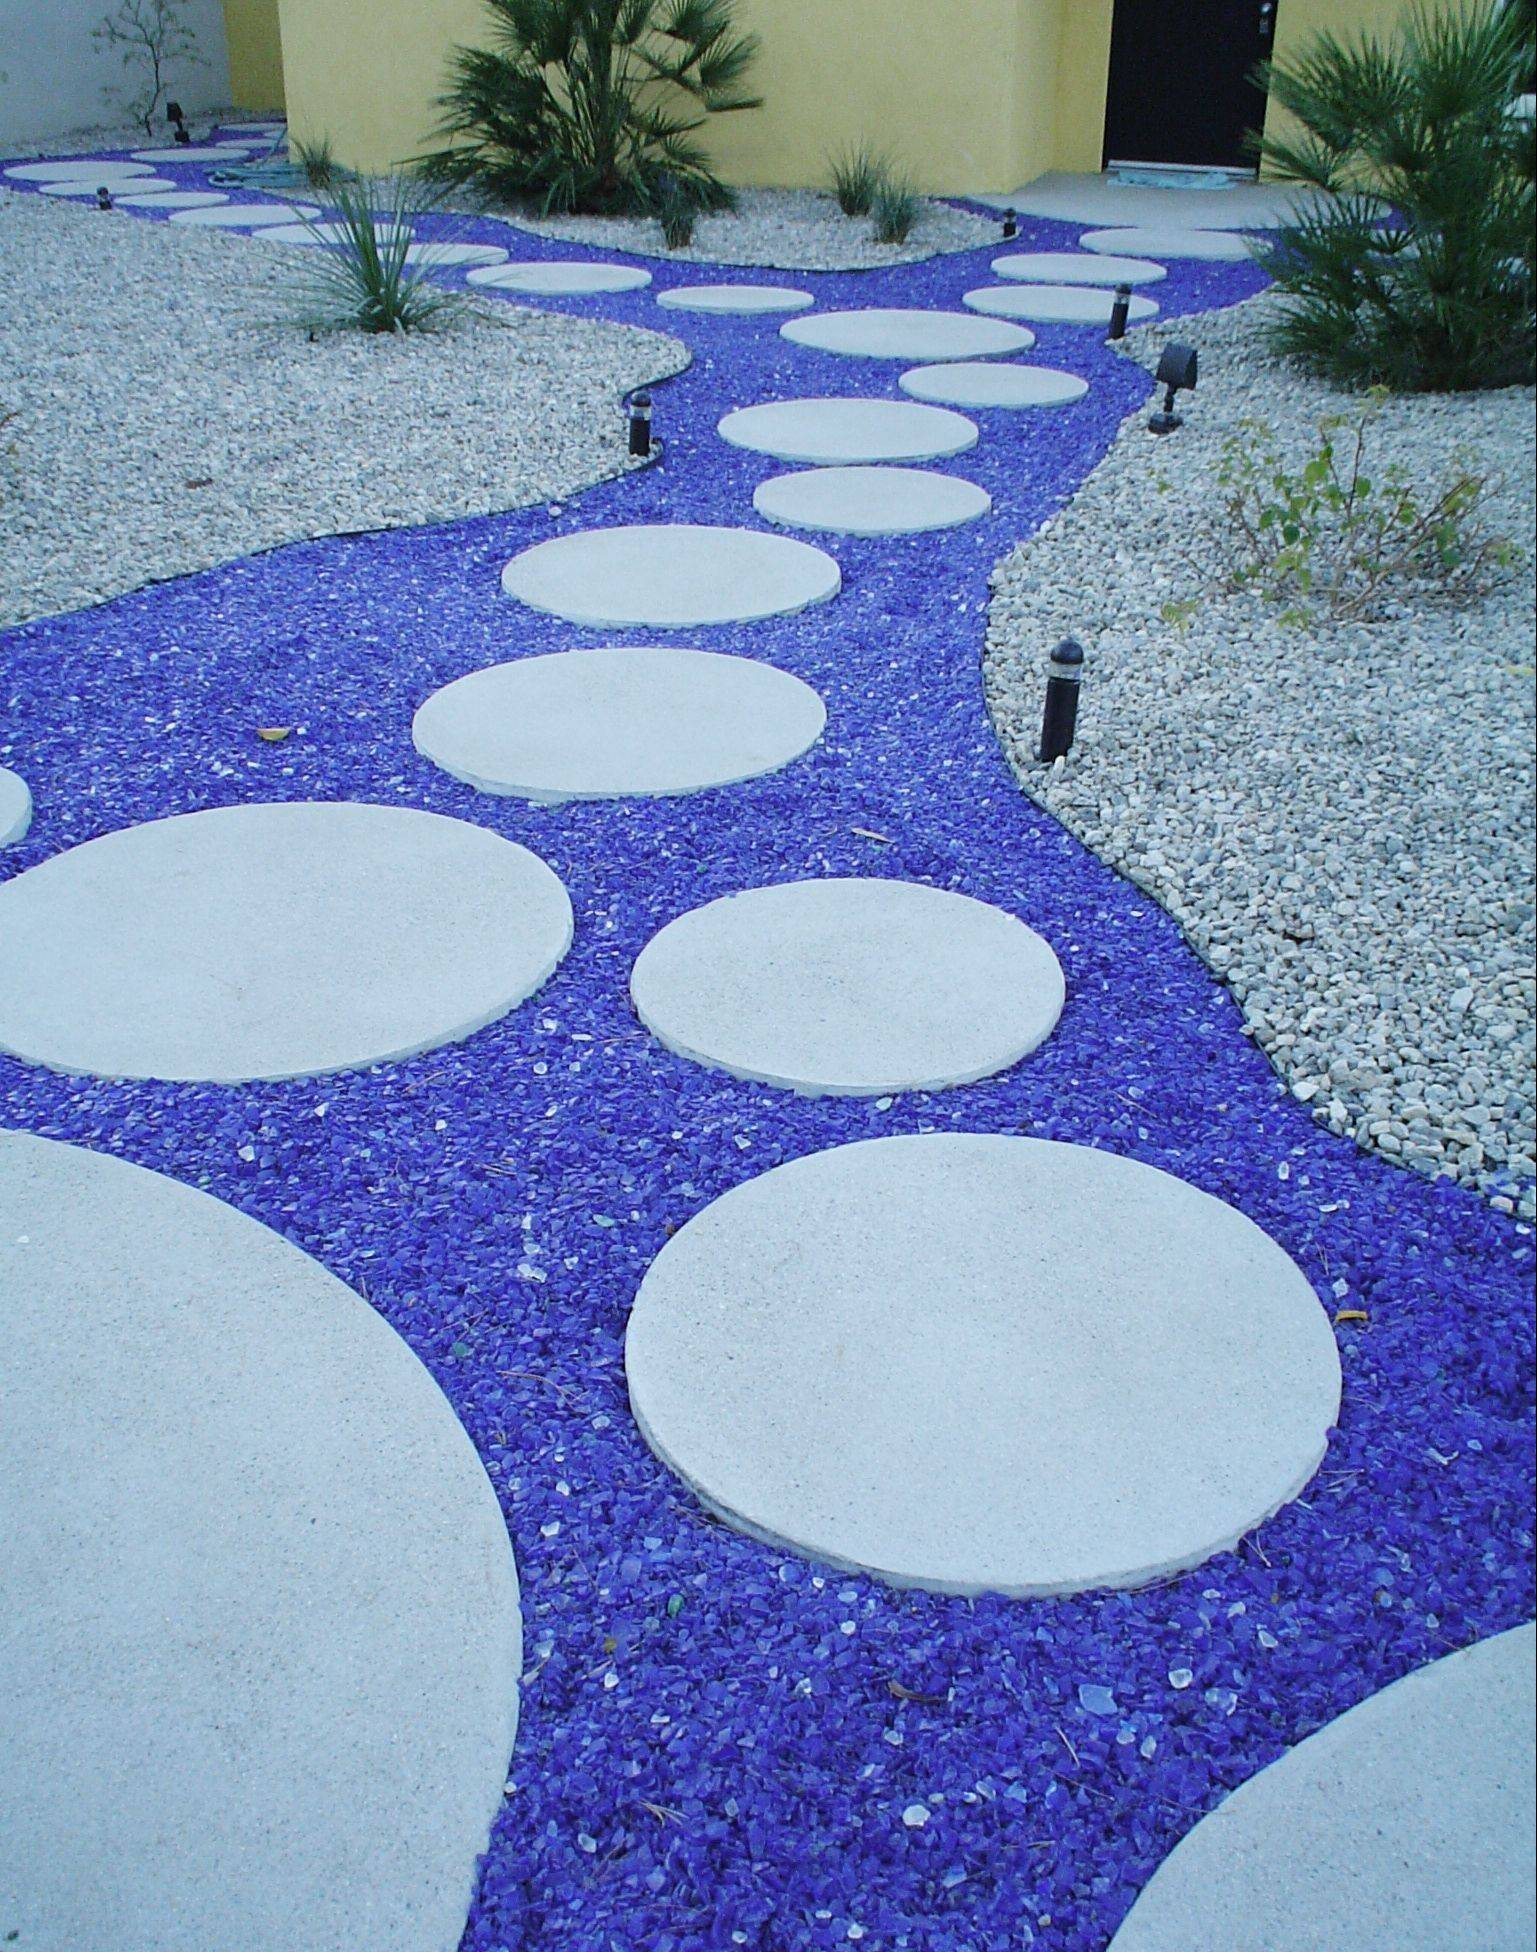 Grass isn't the only filler you can use between your steppingstones. Tumbled recycled glass, pebble mosaics, gravel and ornamental ground cover are also creative choices.